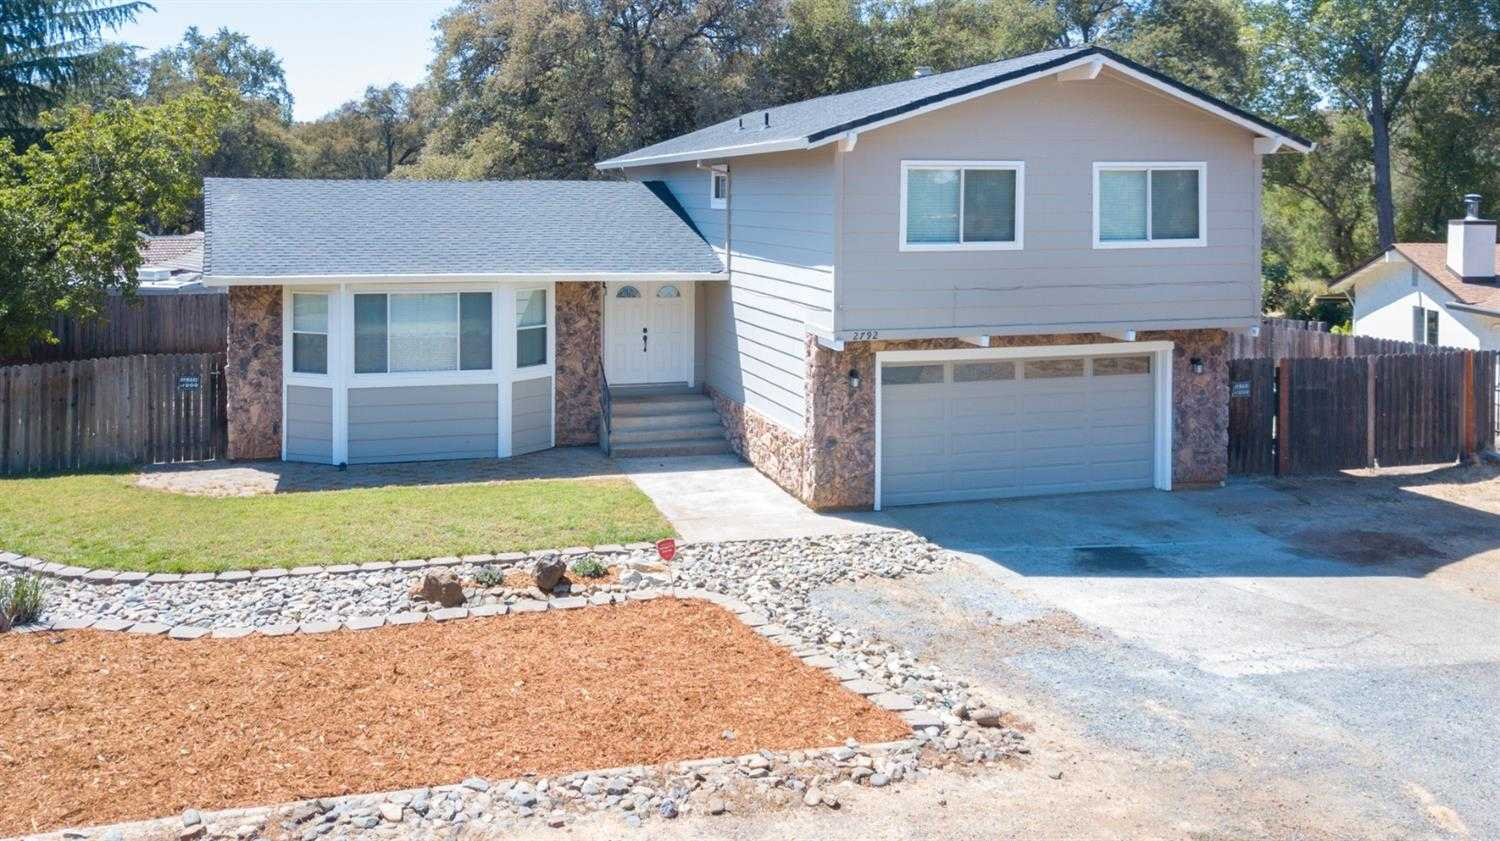 $449,900 - 4Br/3Ba -  for Sale in Cameron Park